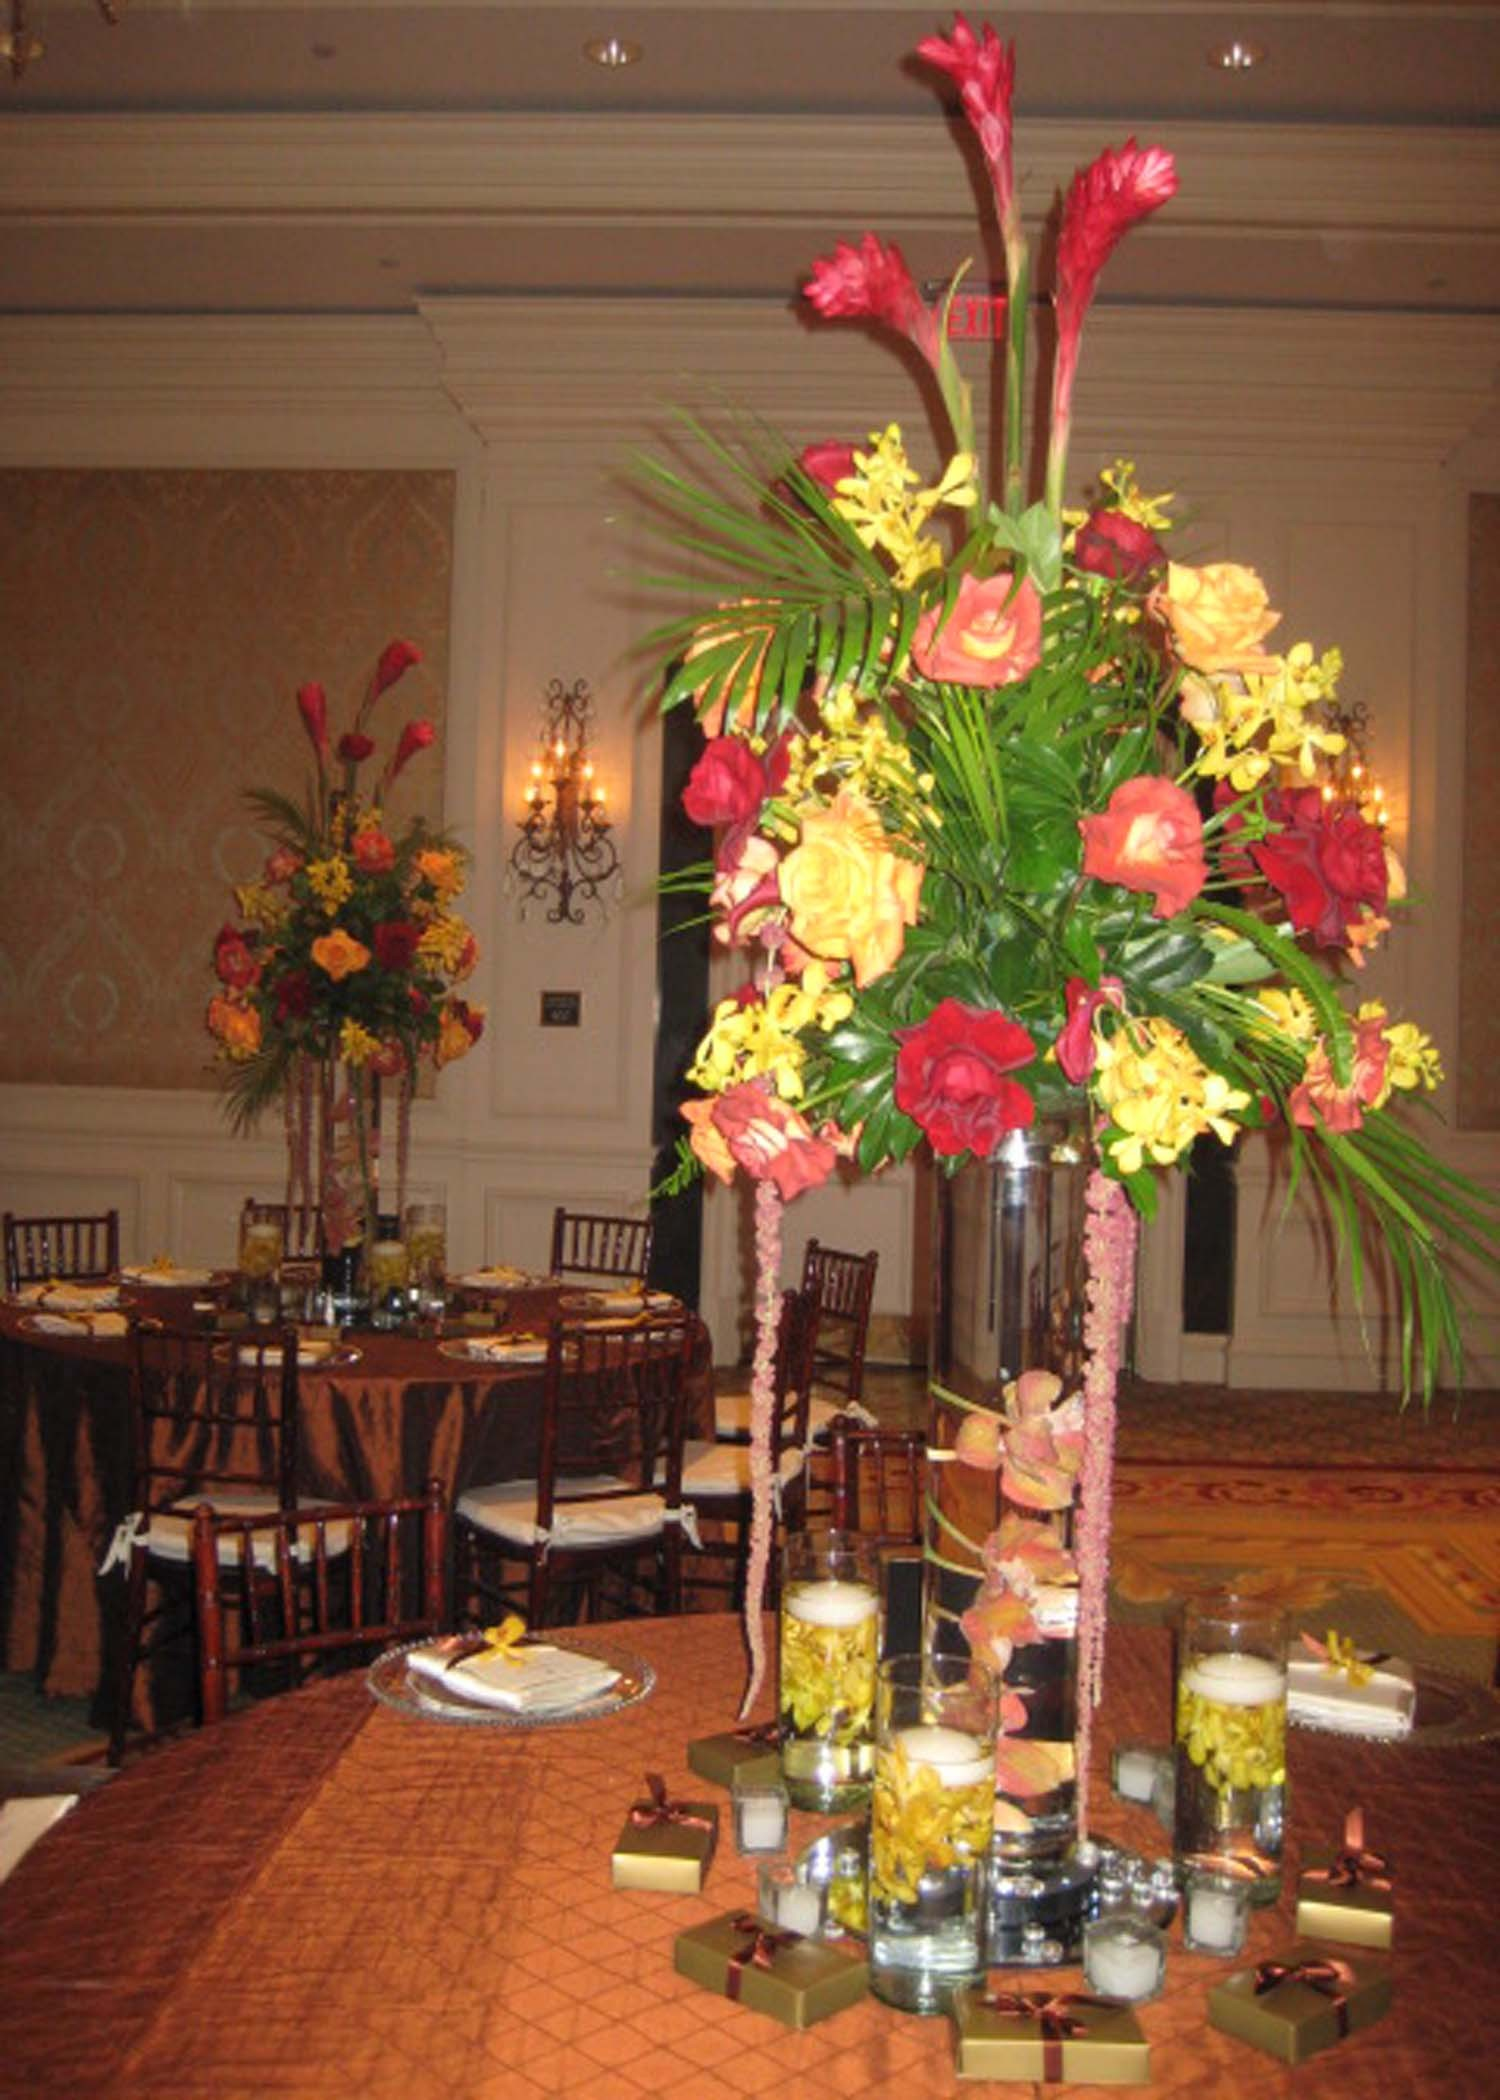 Reception, Flowers & Decor, Centerpieces, Centerpiece, Tropical, Flowers by fudgie